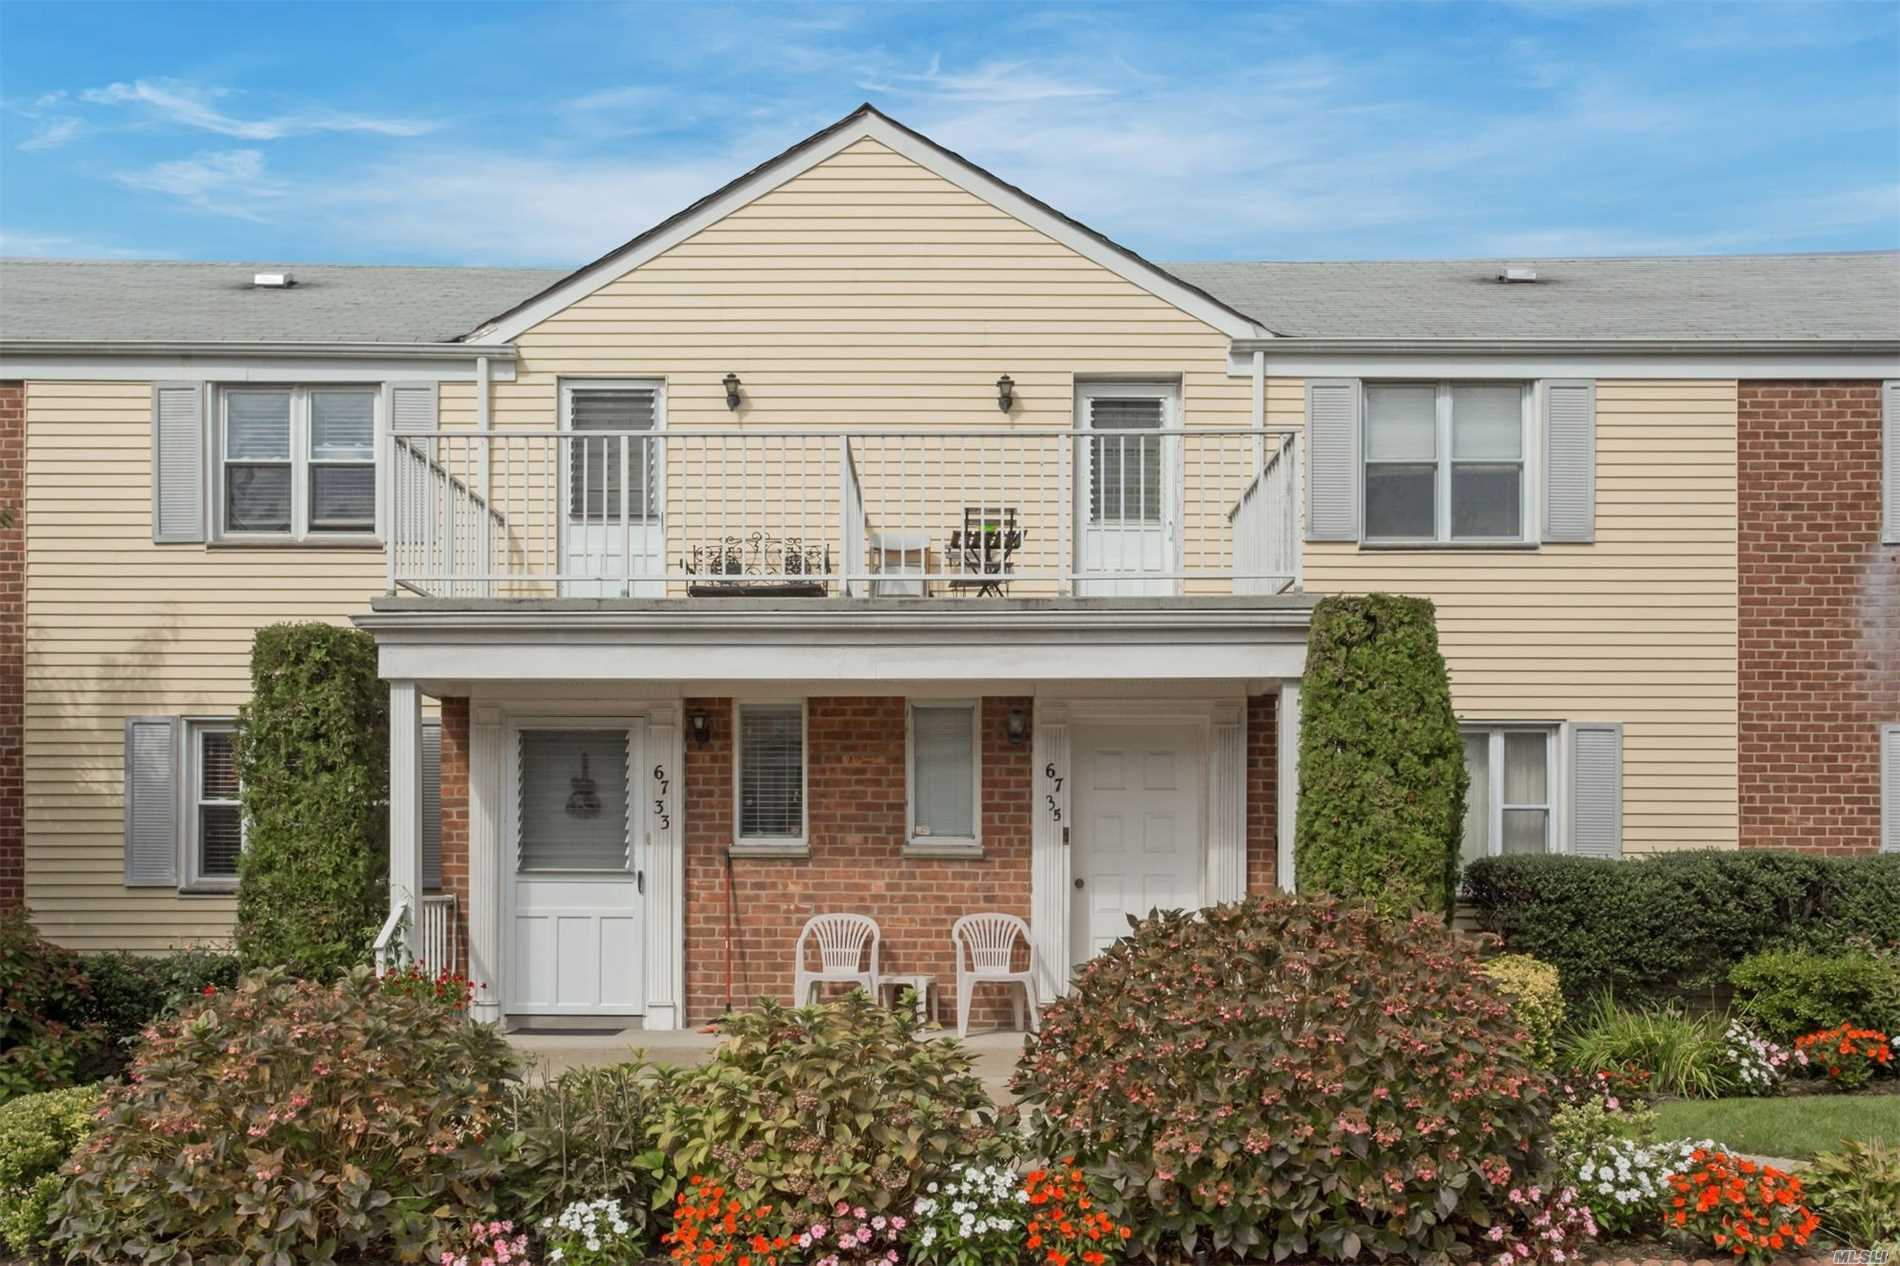 Oversized 1Br/Possible 2nd Bedroom And 2nd Bath Prime Cul-De-Sac 1st Floor Reserved Parking Spot 180 Steps From Unit 2 Blocks To Alley Pond Park (Dog Run)